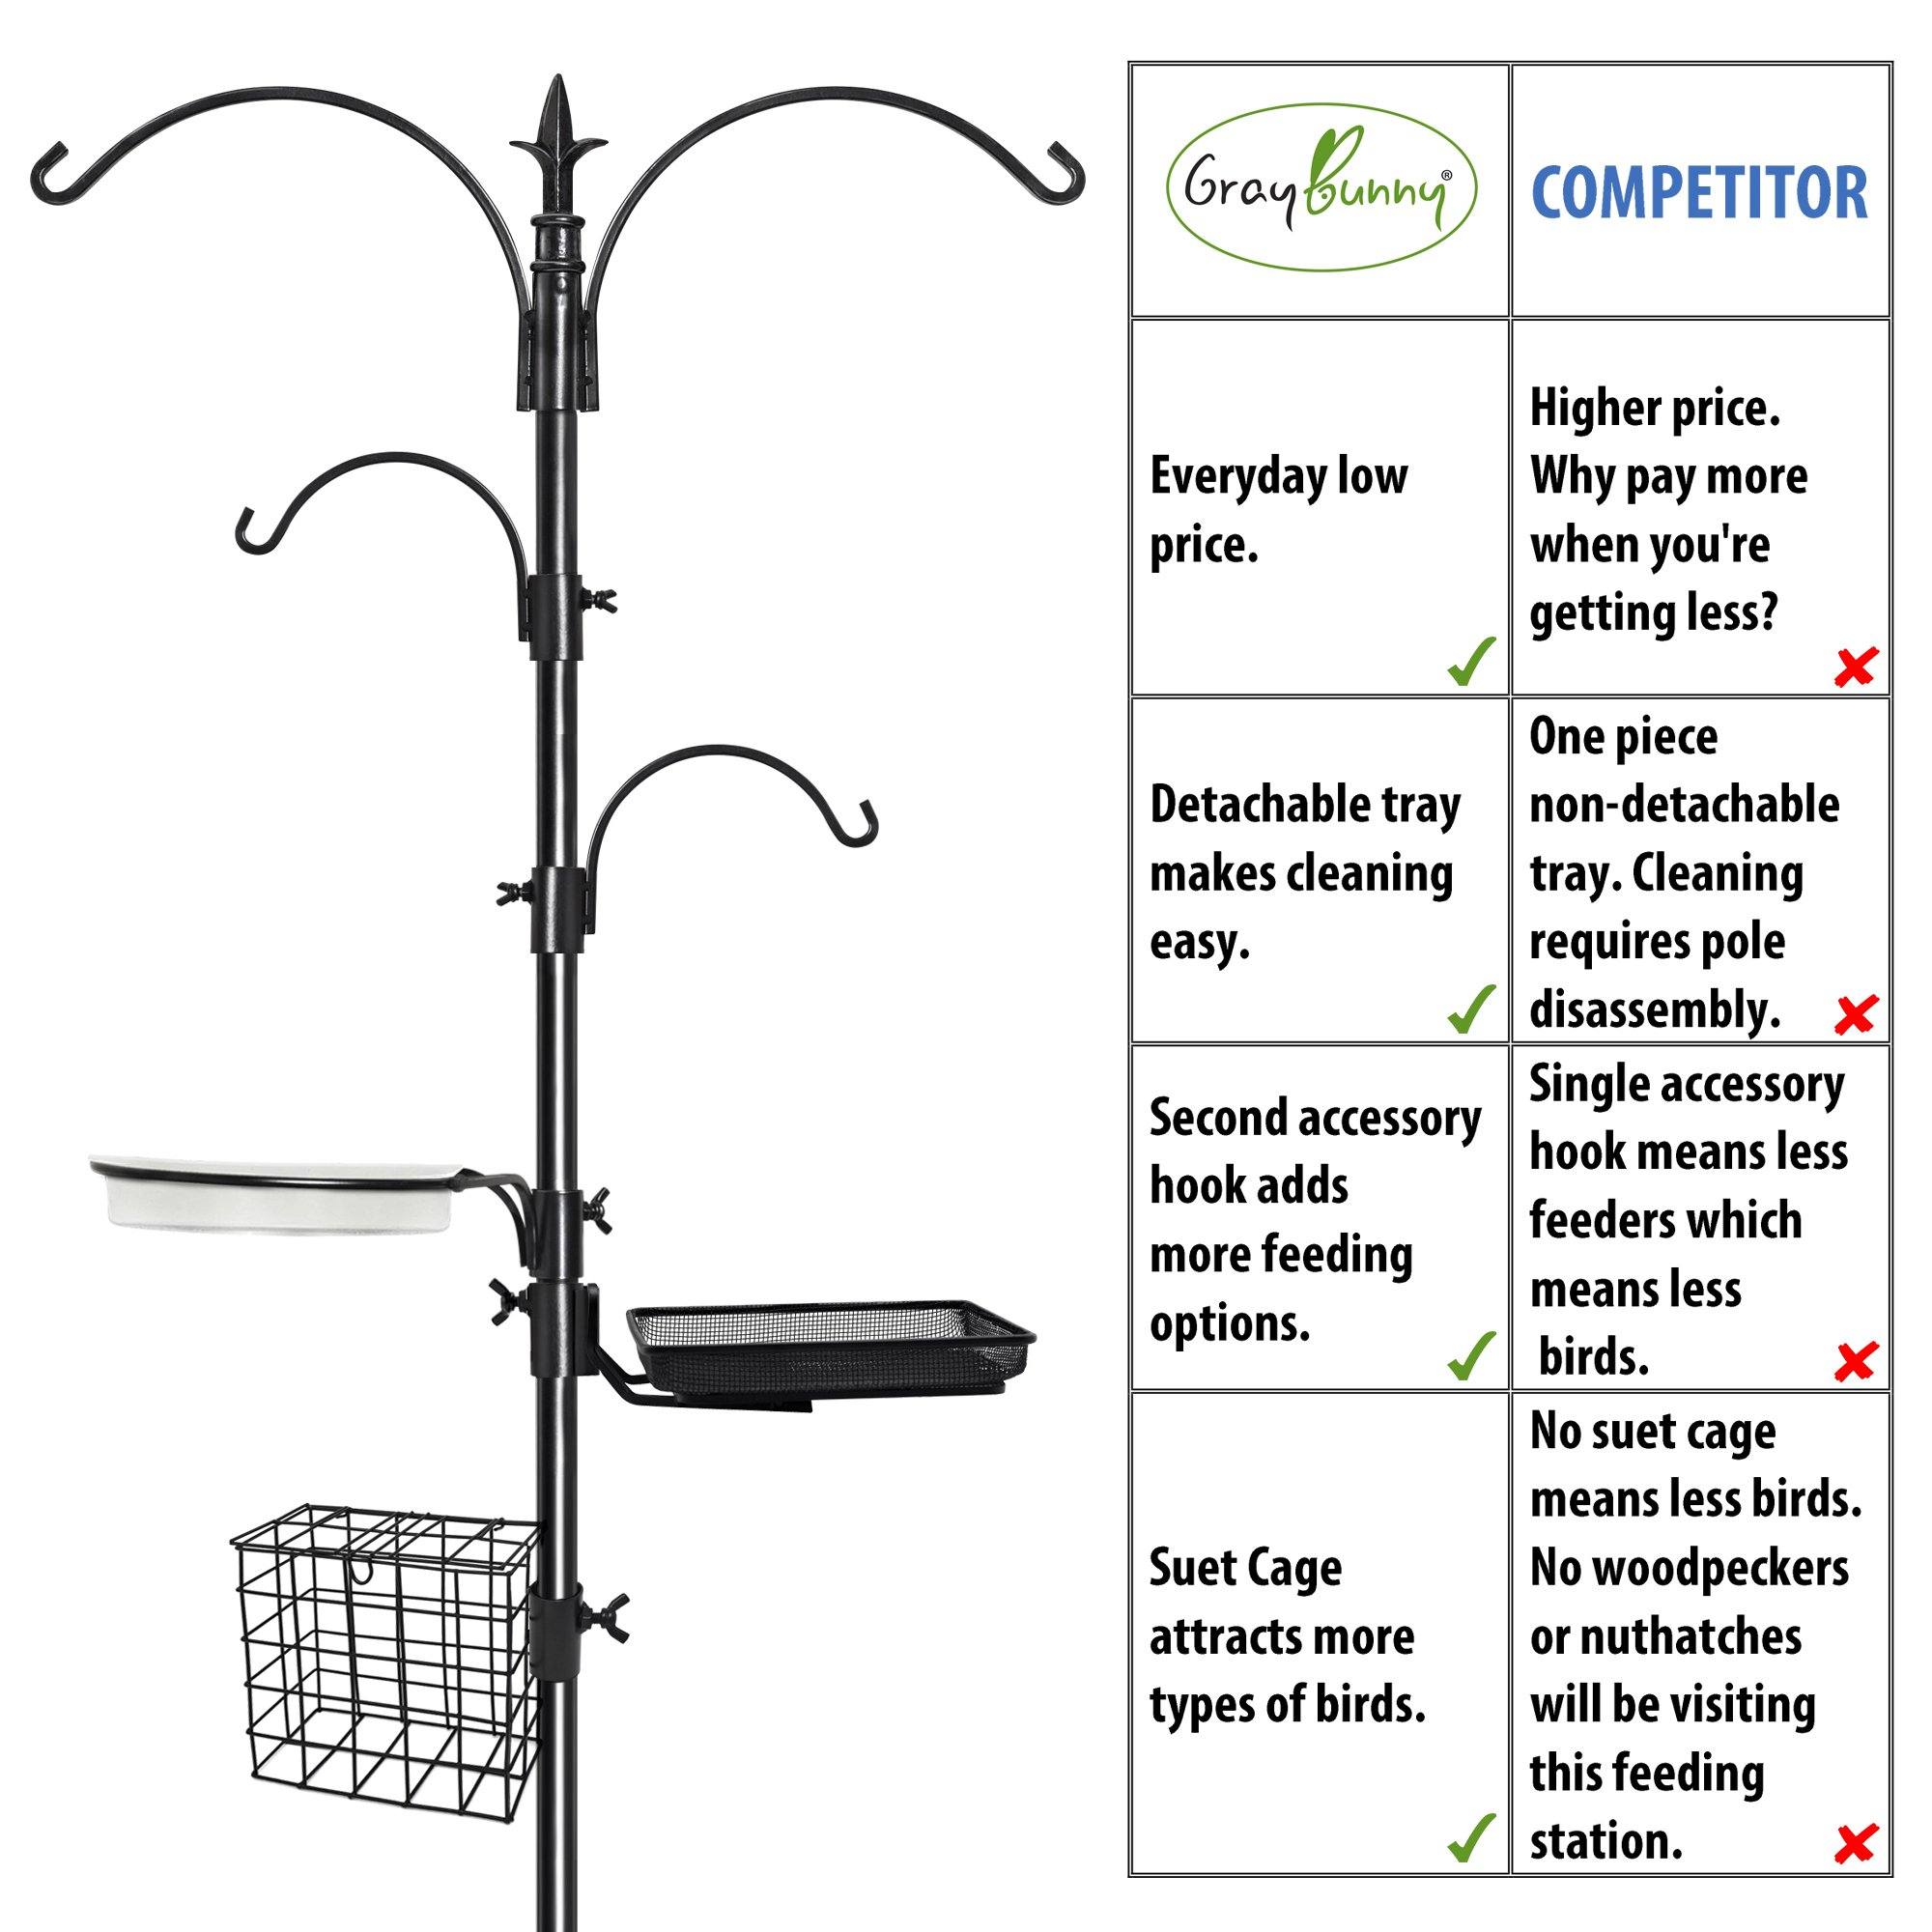 Gray Bunny GB-6844D Deluxe Premium Bird Feeding Station, 22'' Wide x 91'' Tall (82 inch above ground) Black, Multi Feeder Hanging Kit & Bird Bath For Attracting Wild Birds, Birdfeeder & Planter Hanger by Gray Bunny (Image #6)